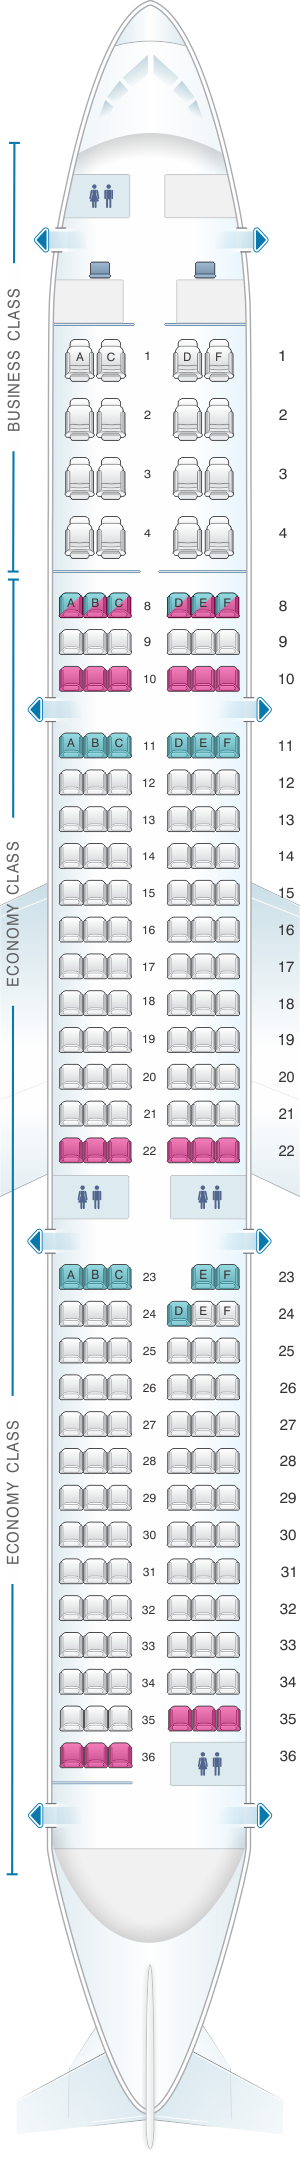 Seat map for Aeroflot Russian Airlines Airbus A321 Config.3